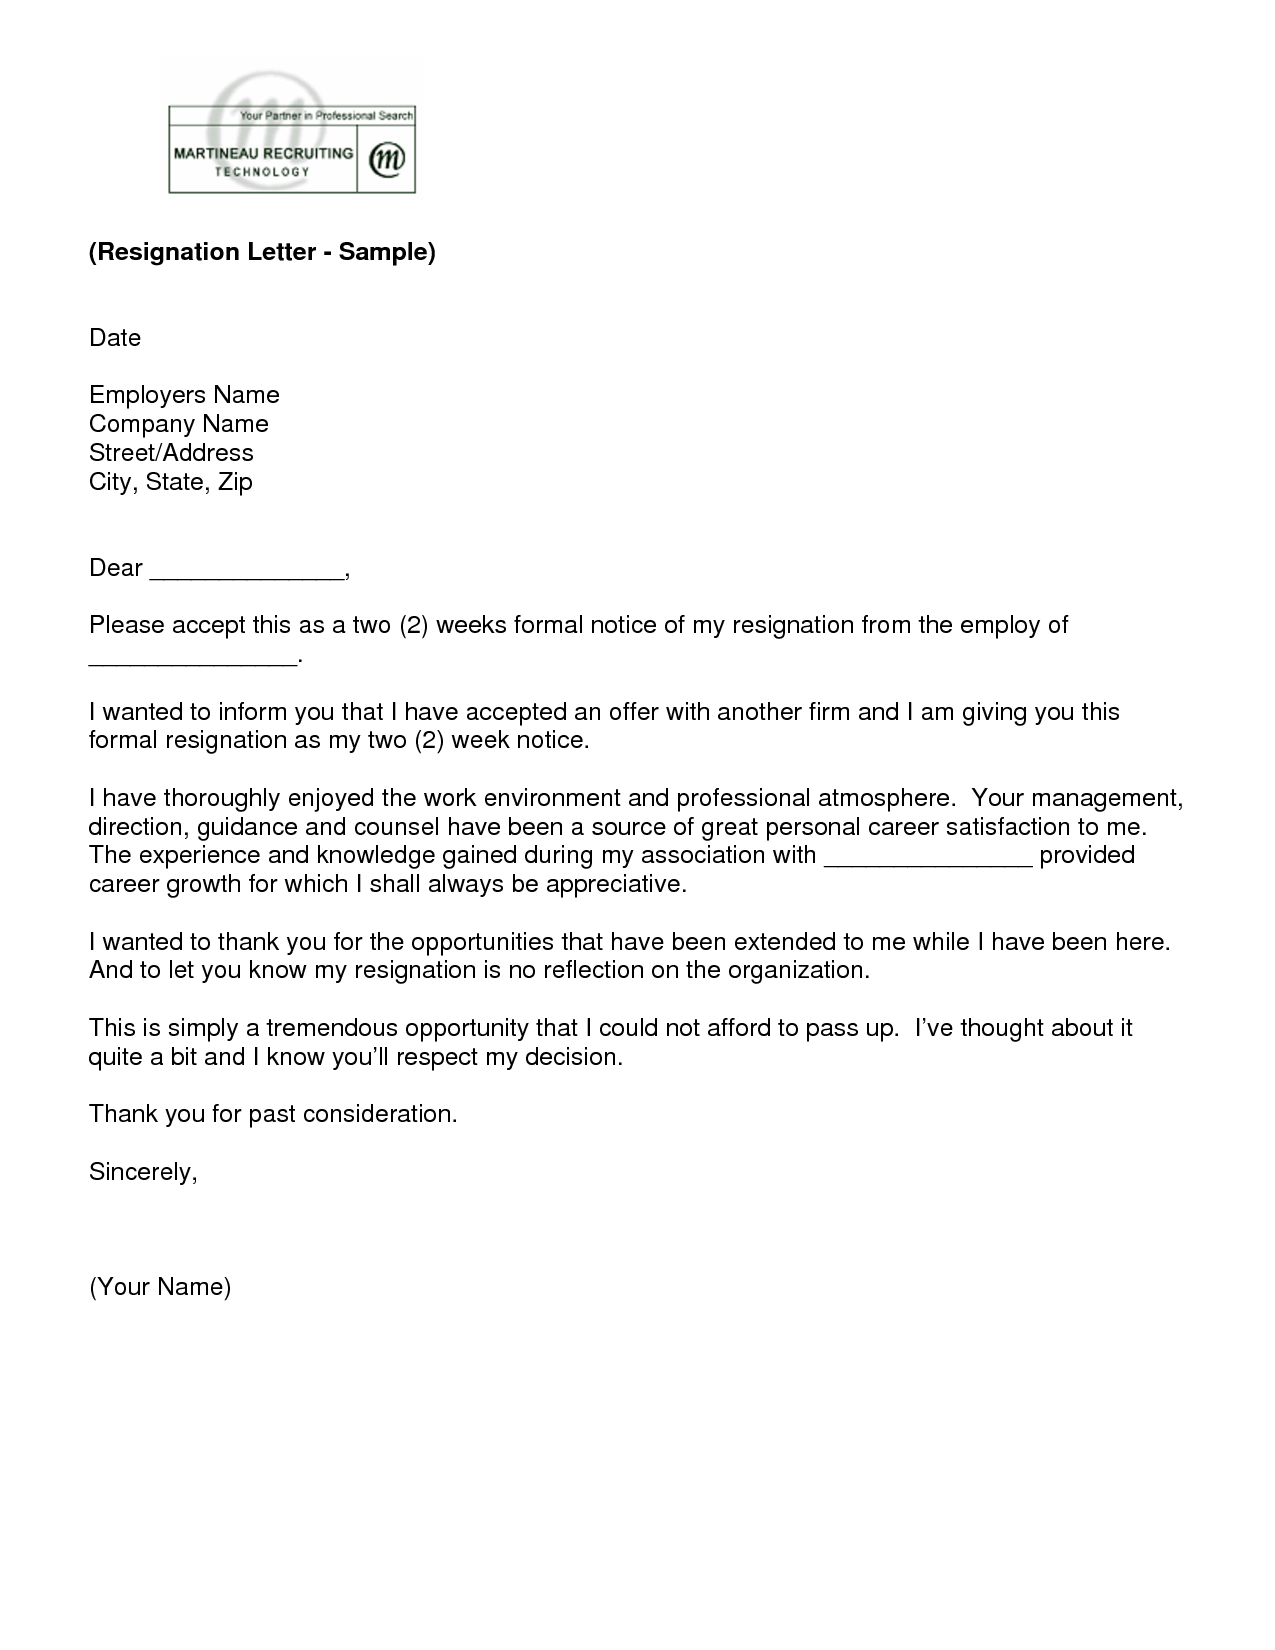 letter of resignation 2 weeks notice template | Ew ...